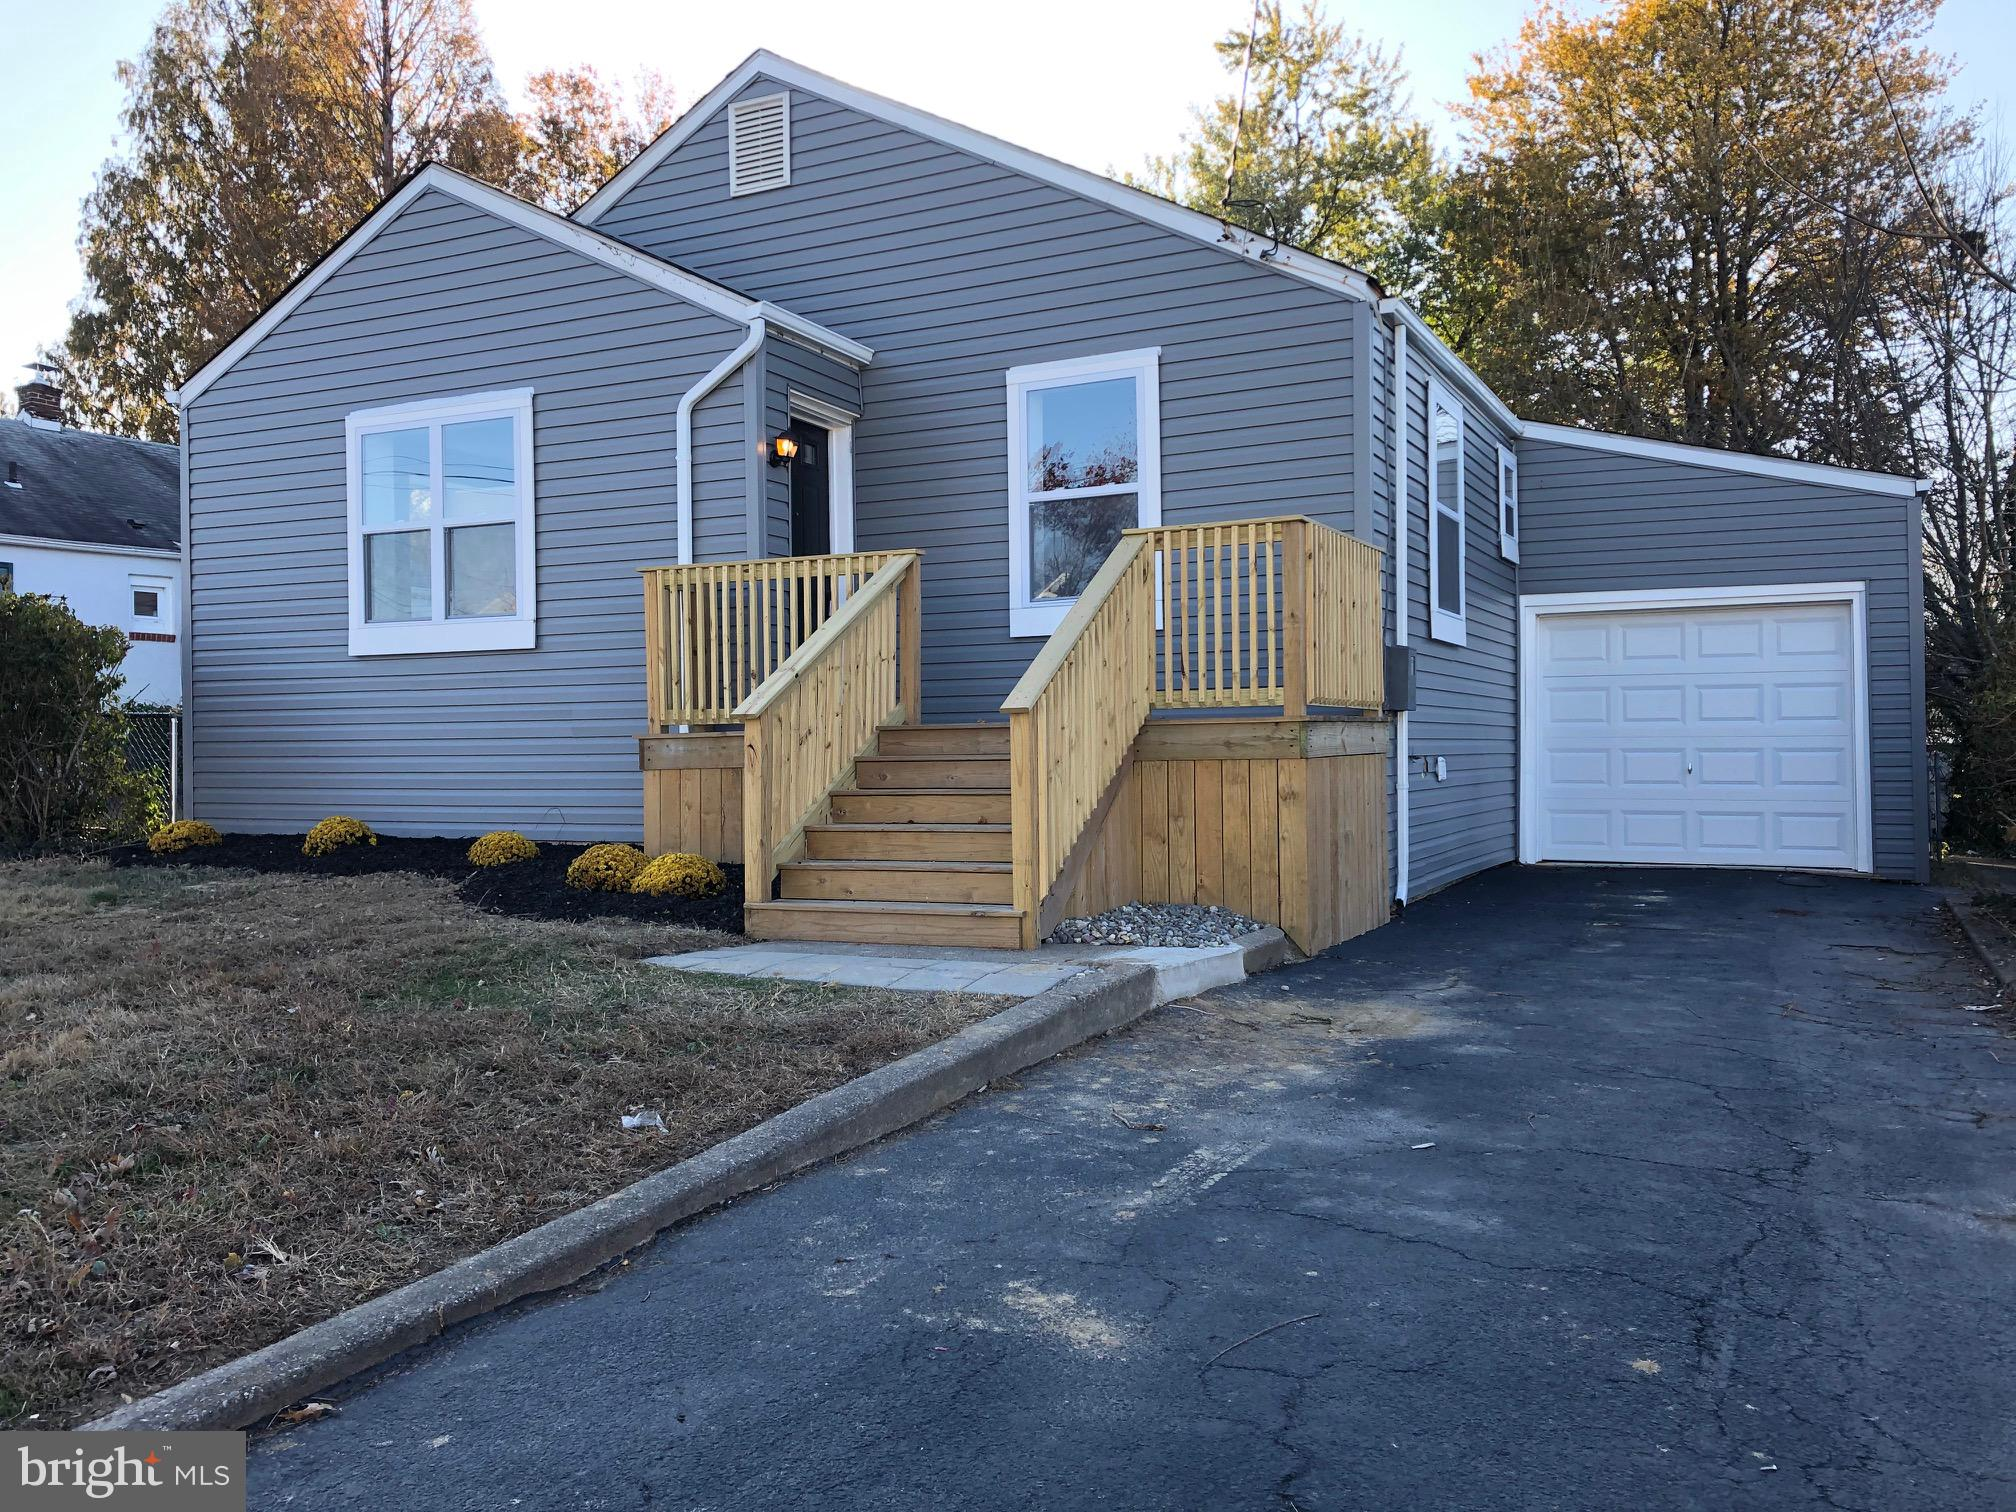 Check out this freshly renovated 3 bedroom, 2 bath, 1 car garage home! Starting outside the home has